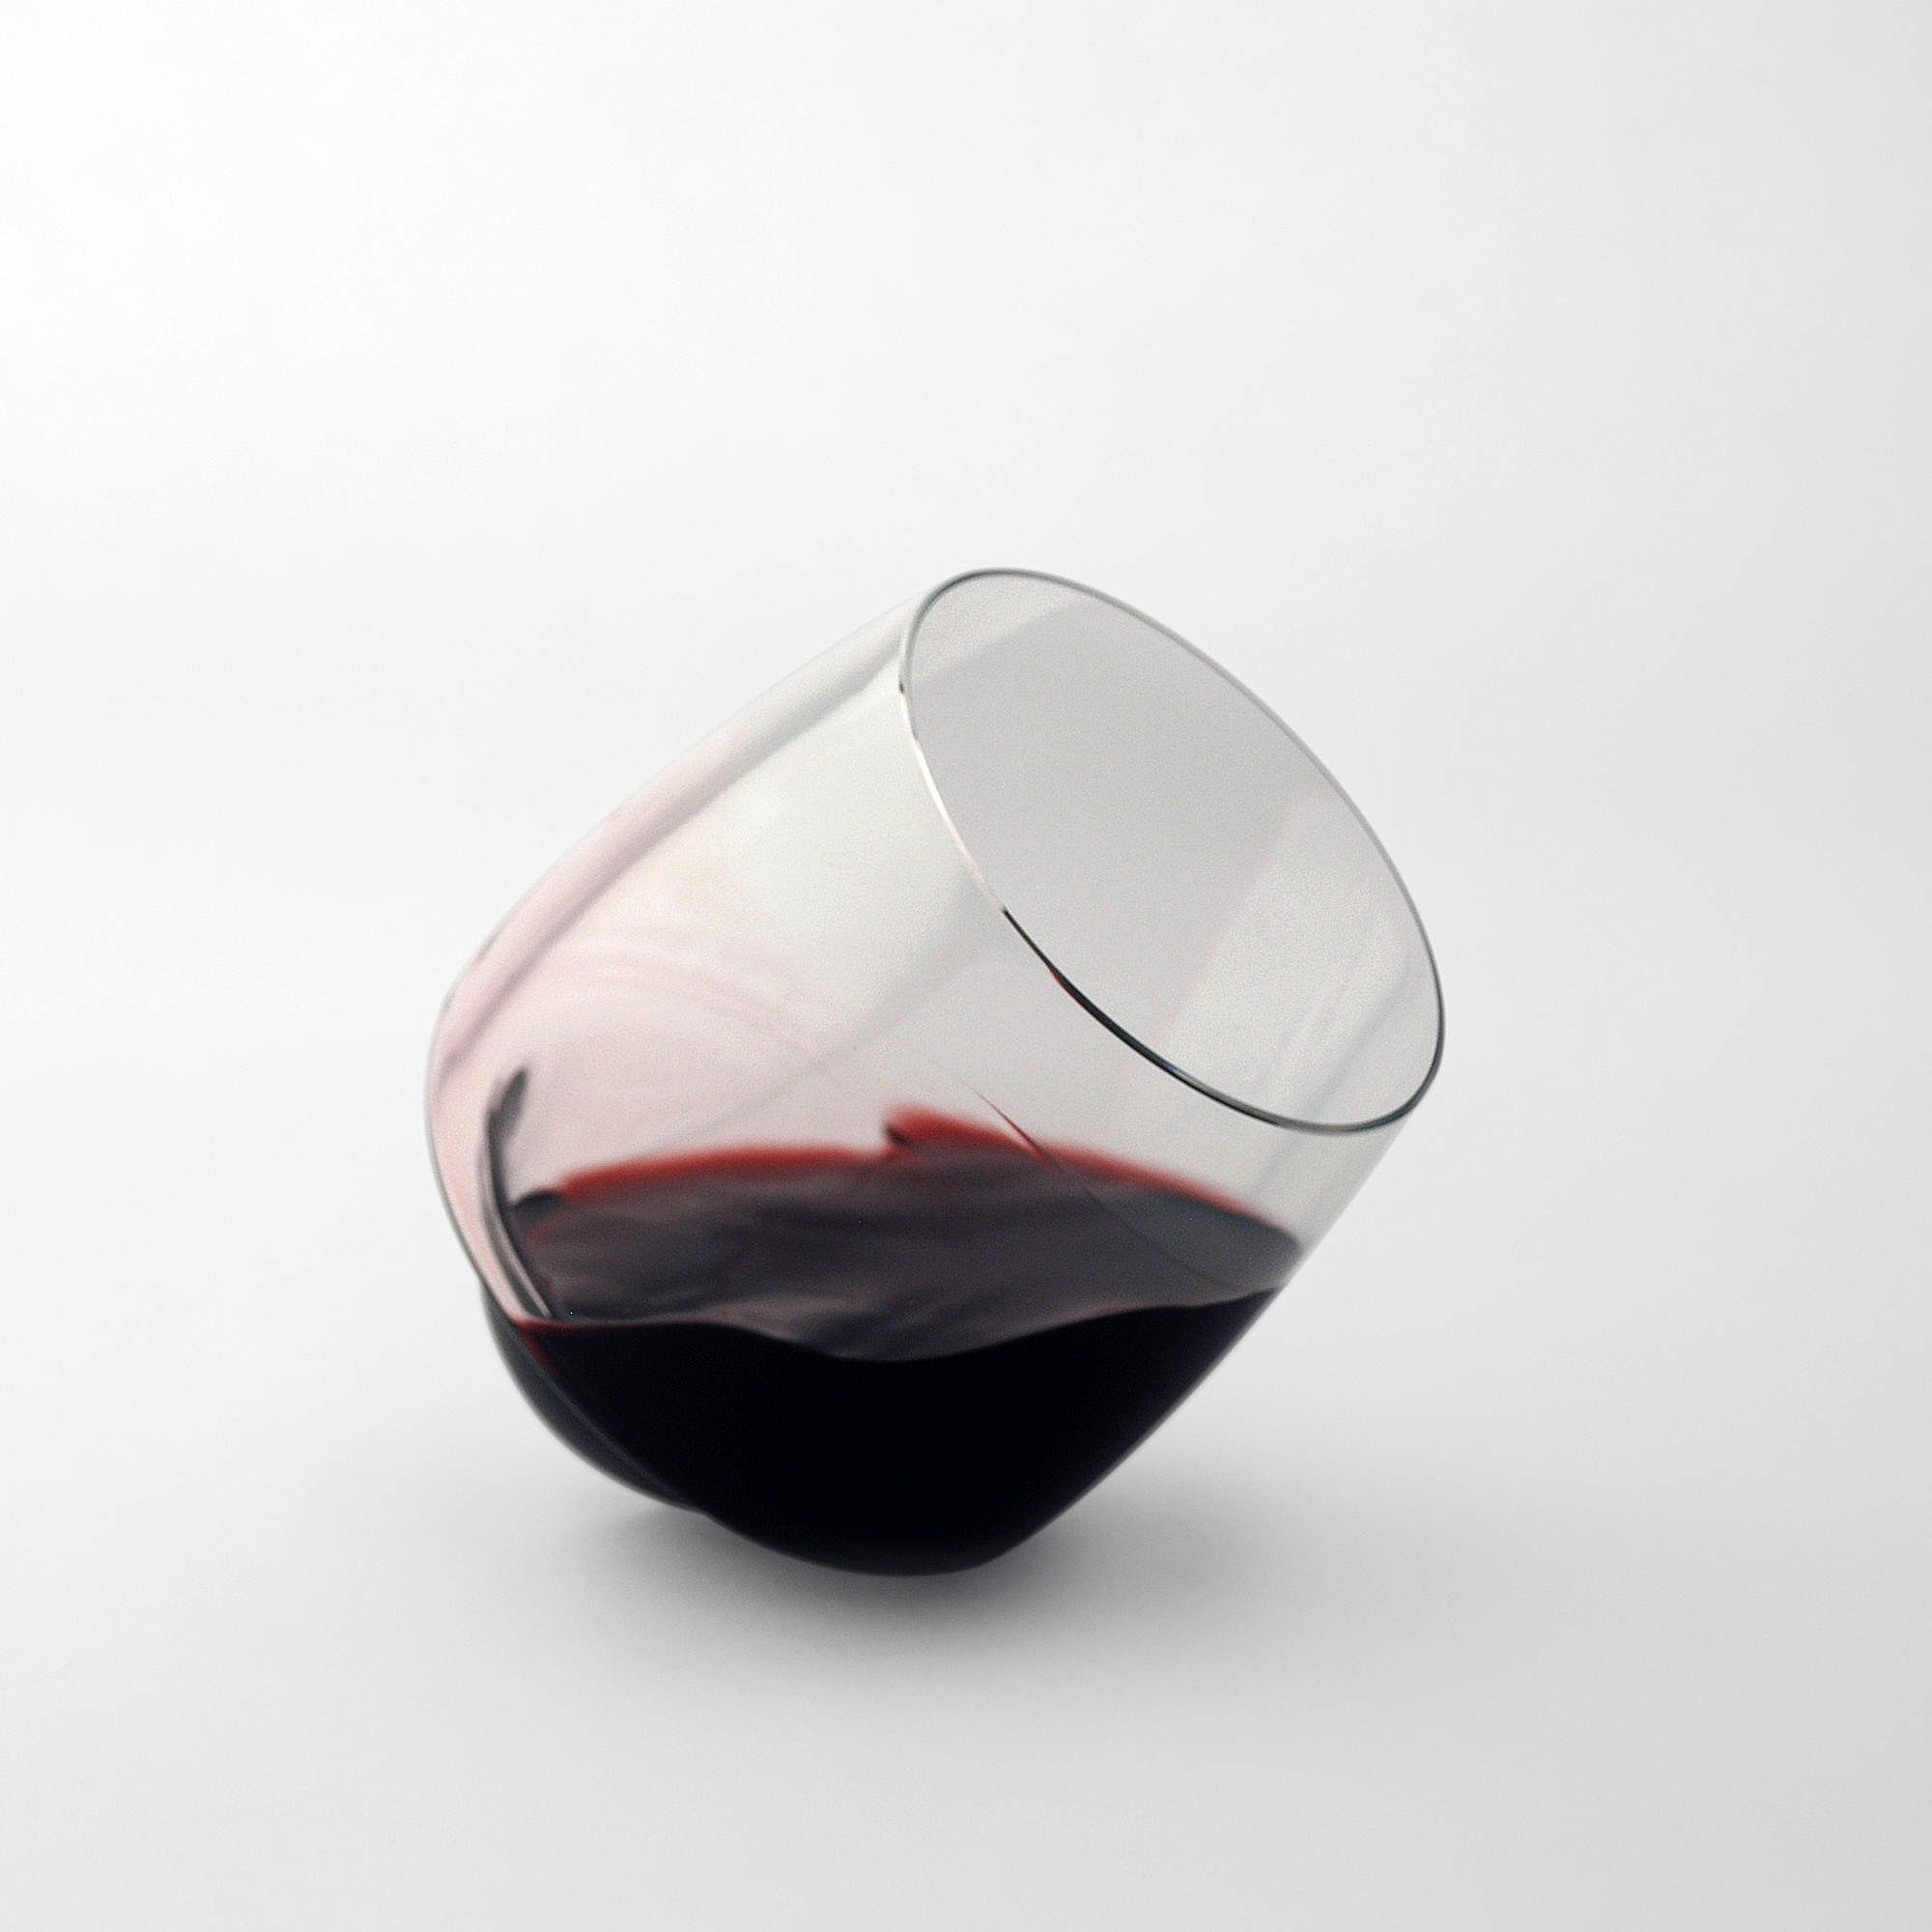 Fine Finally Un Spillable Wine Glasses Drinks Wine Glass Cjindustries Chair Design For Home Cjindustriesco